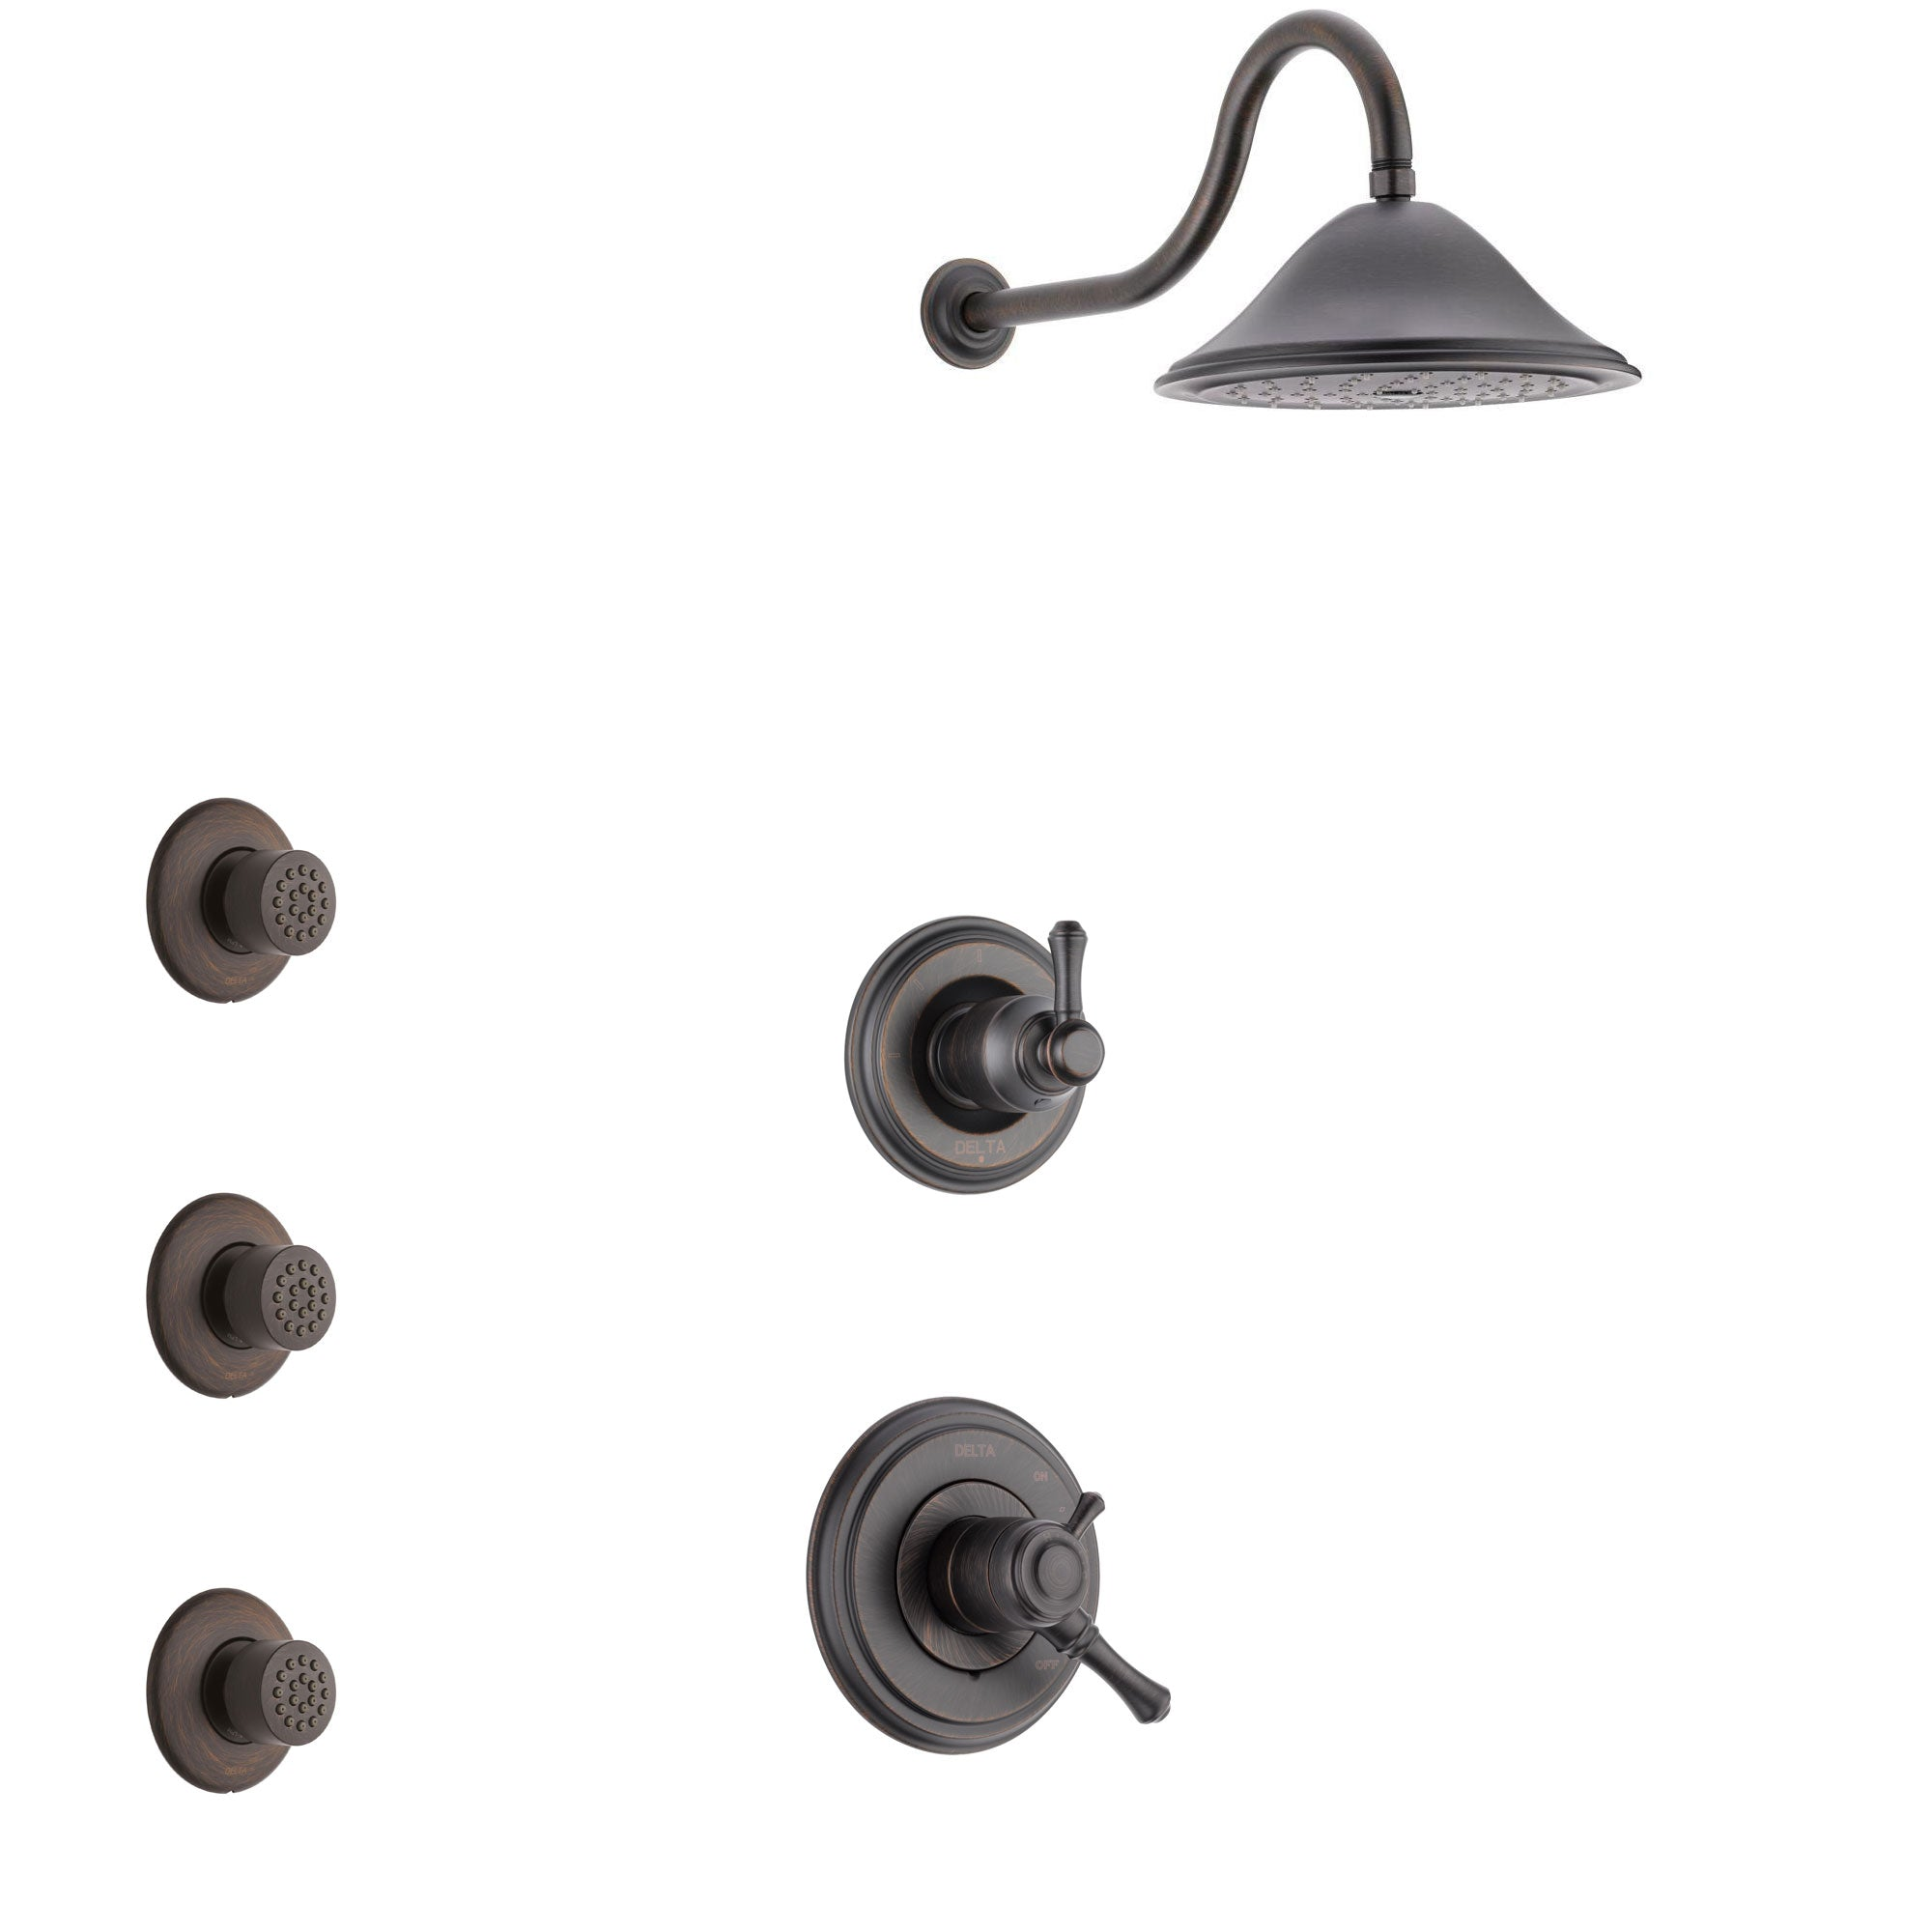 Delta Cassidy Venetian Bronze Finish Shower System with Dual Control Handle, 3-Setting Diverter, Showerhead, and 3 Body Sprays SS1797RB7